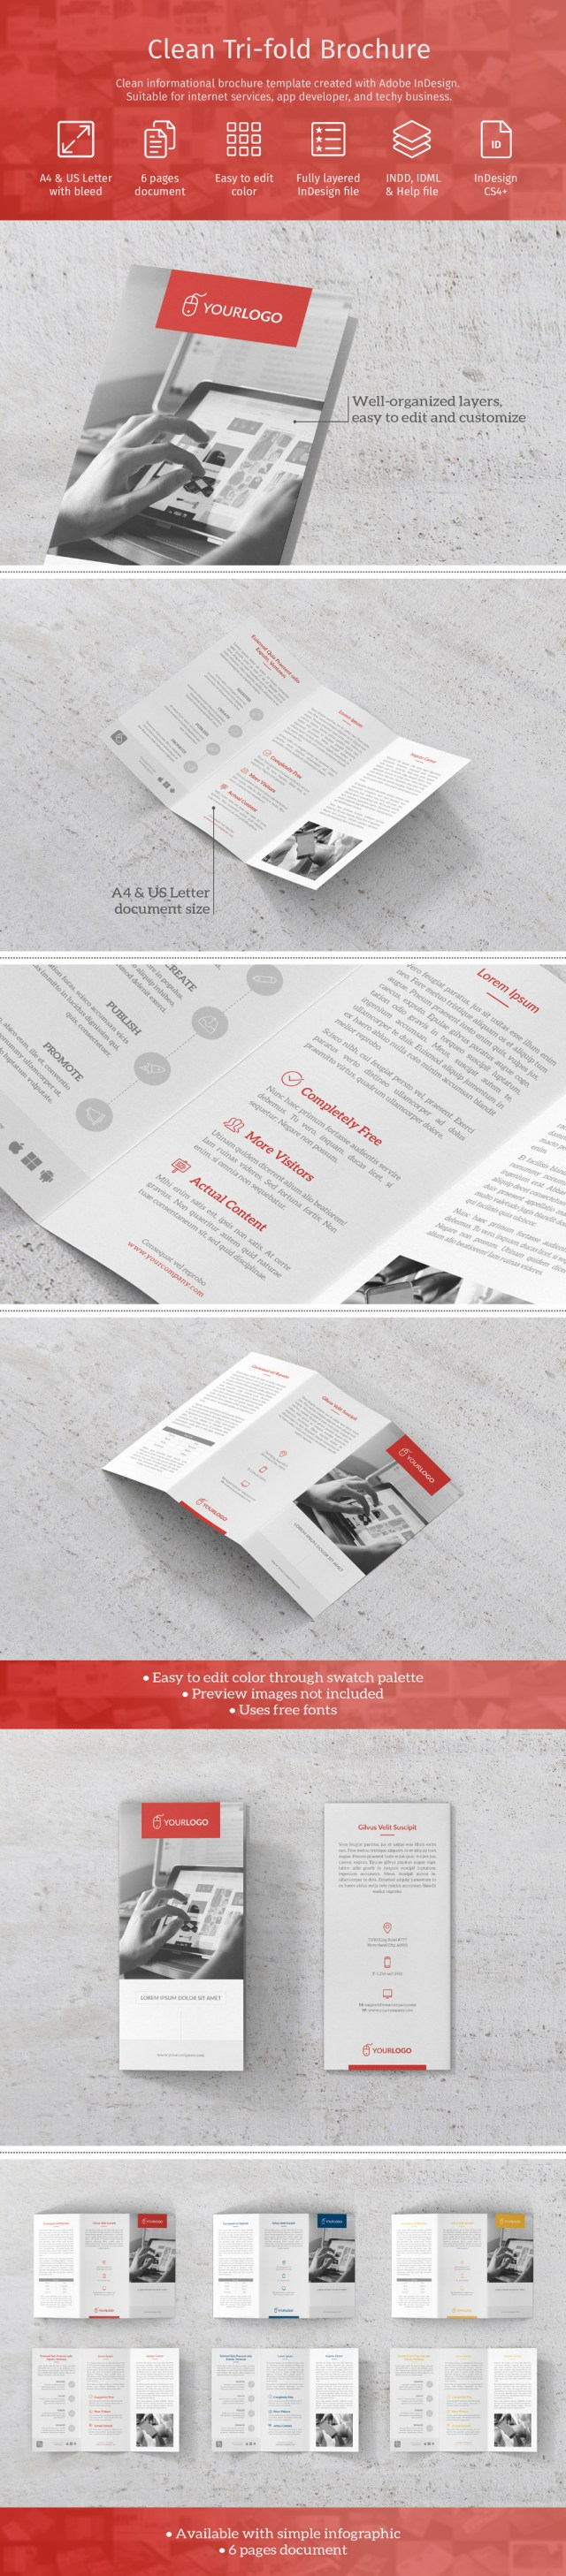 Free Clean Trifold Brochure Template